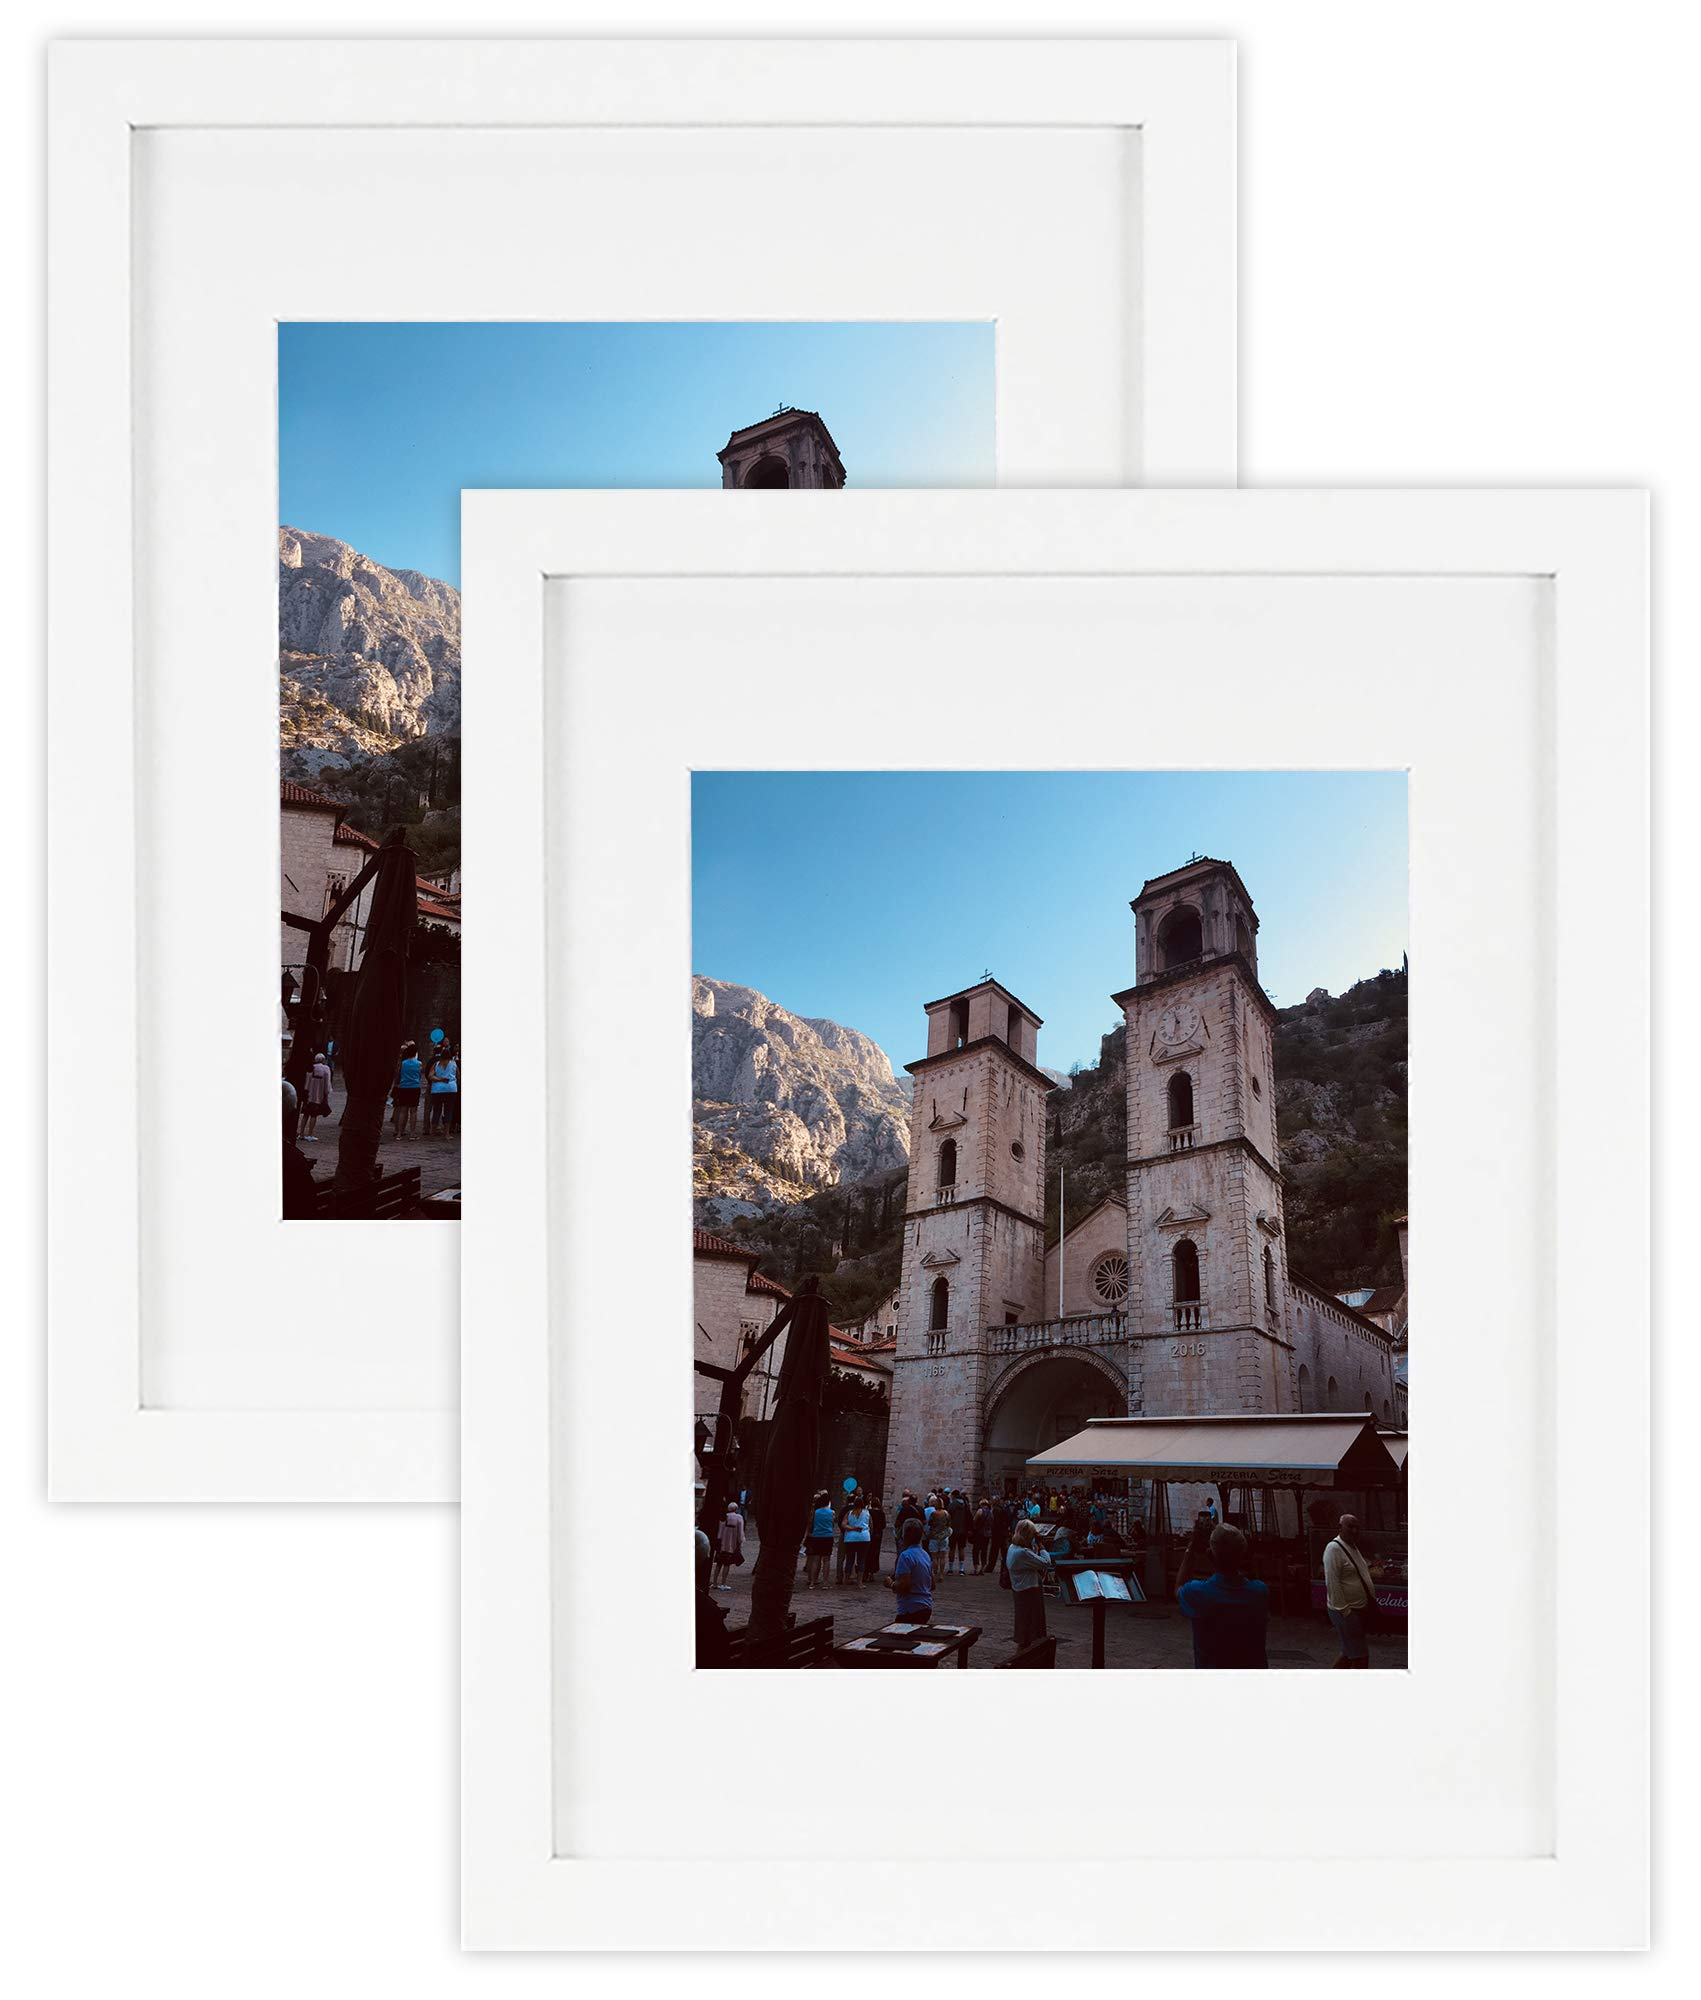 Golden State Art, Set of 2 White Photo Wood Frame 11x14 with Real Glass Mat for 8x10 Picture by Golden State Art (Image #1)